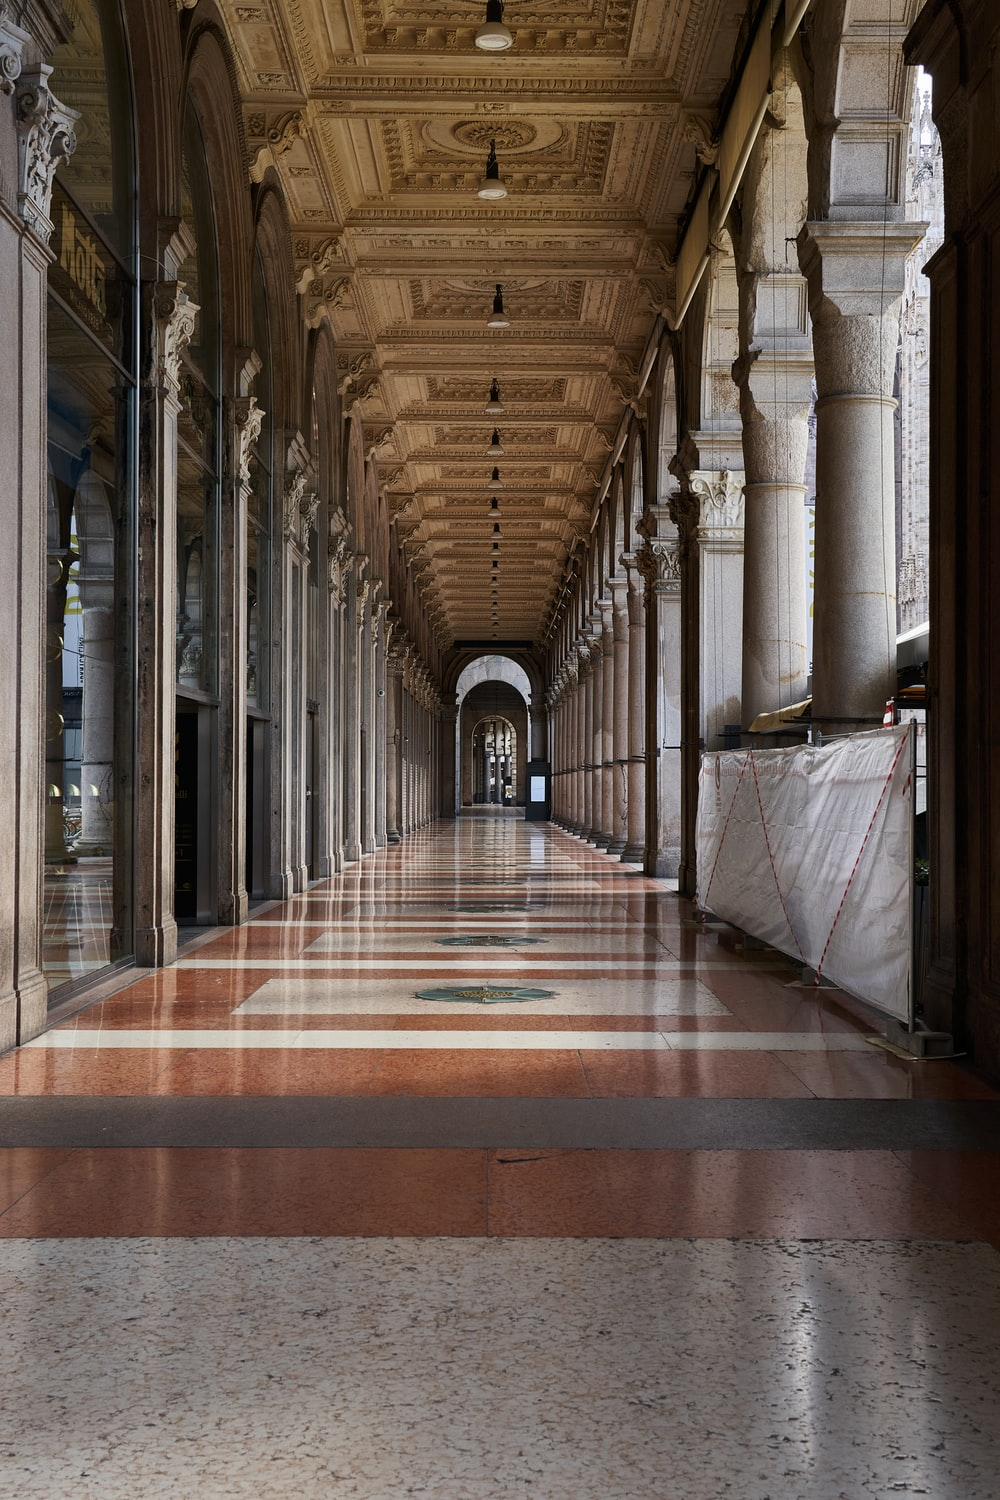 brown and white hallway with no people